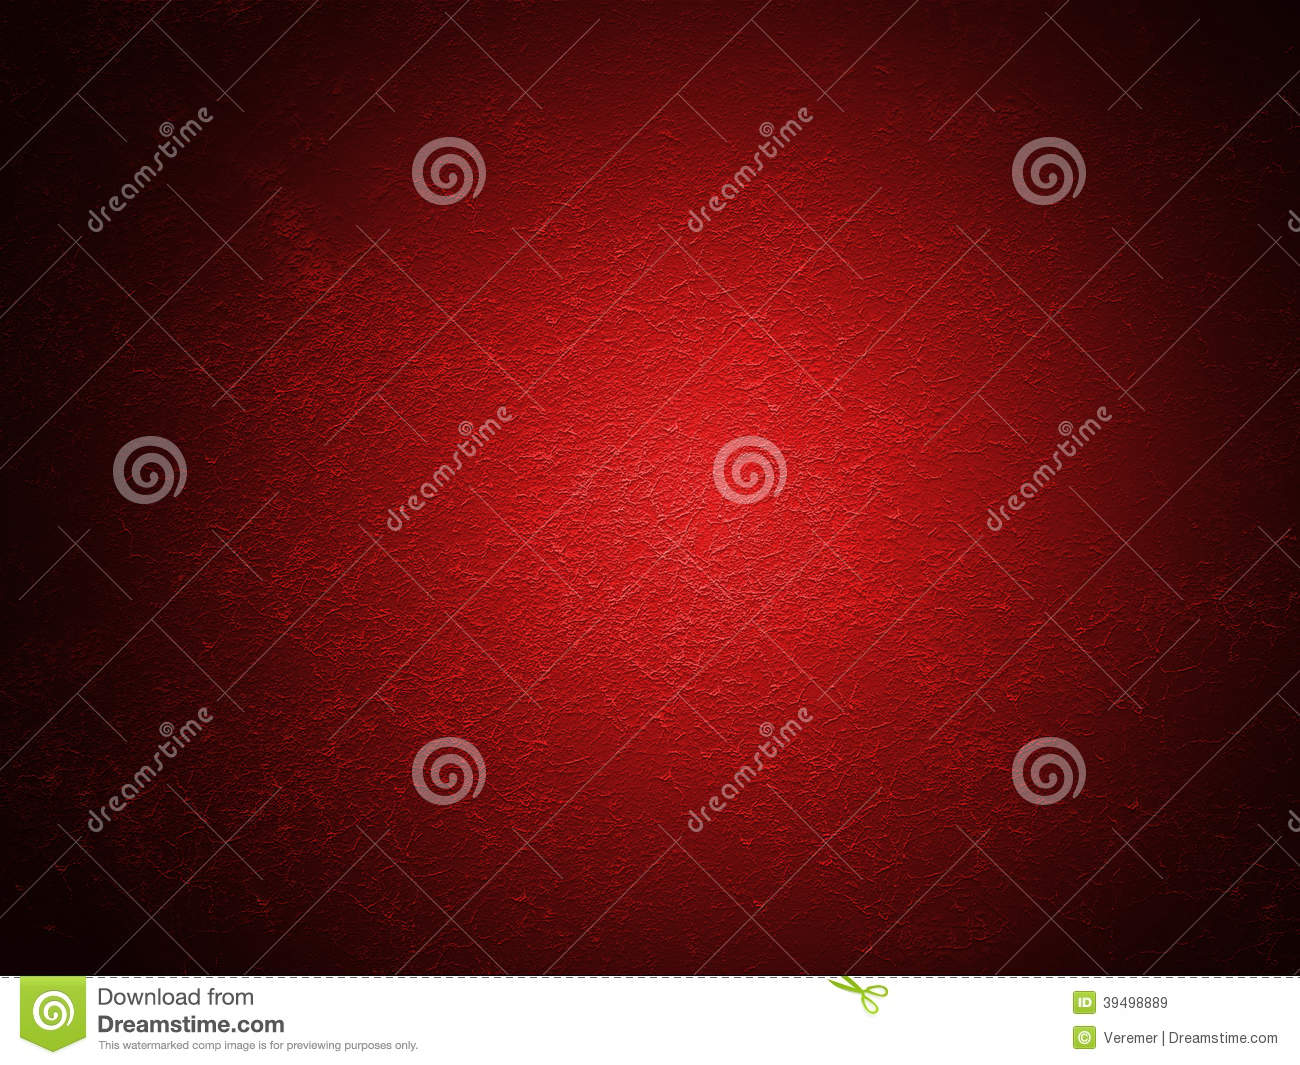 grain red paint wall background or texture stock photo - image